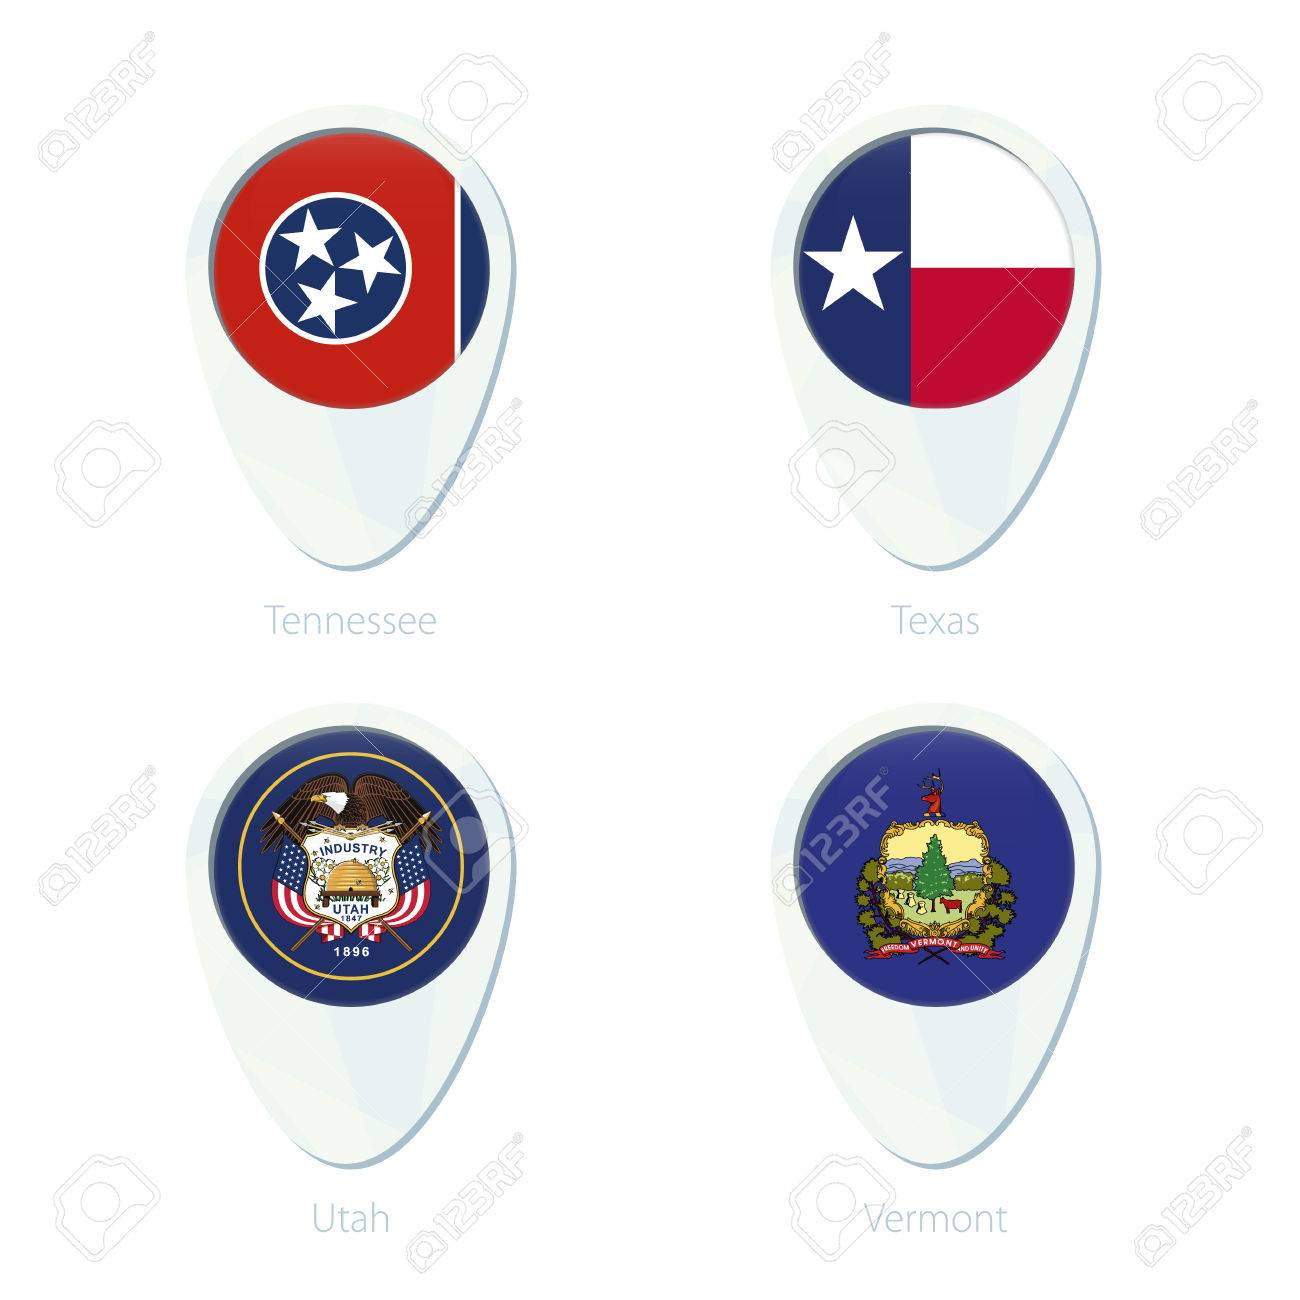 1300x1300 Tennessee, Texas, Utah, Vermont Flag Location Map Pin Icon